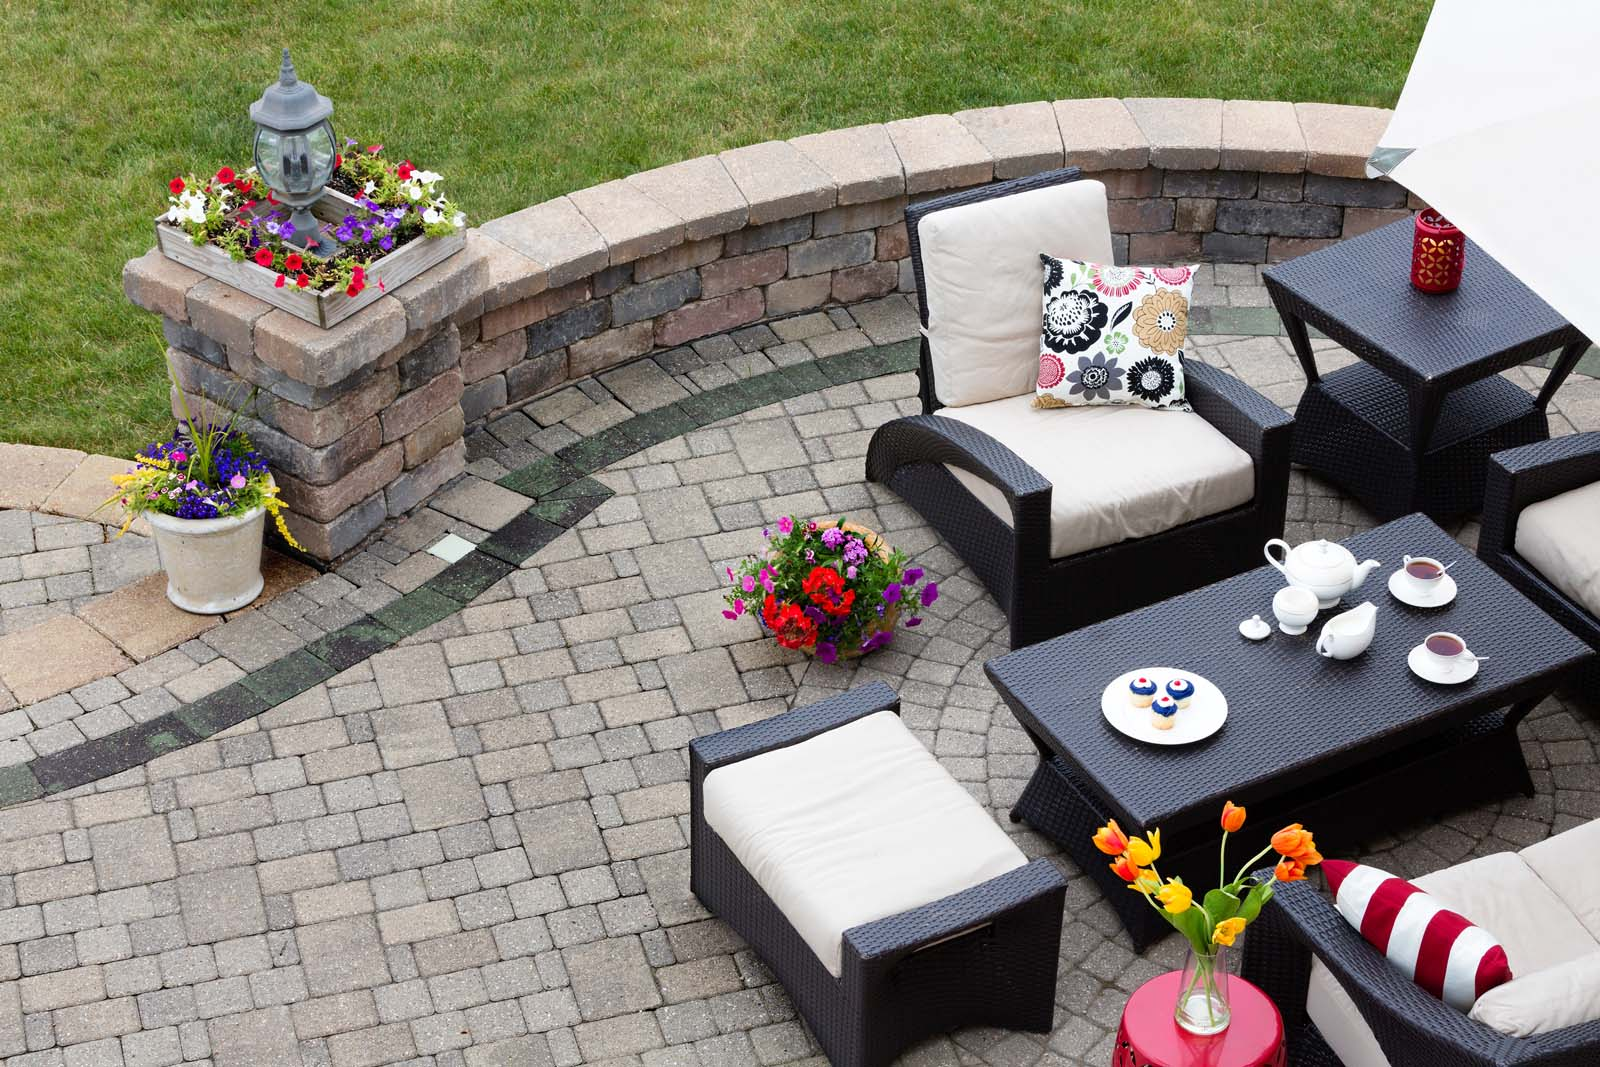 Brick paved patio with comfortable patio furniture with modern armchairs and a stool around a table set with tea and cookies alongside a low curving wall overlooking a green lawn high angle view